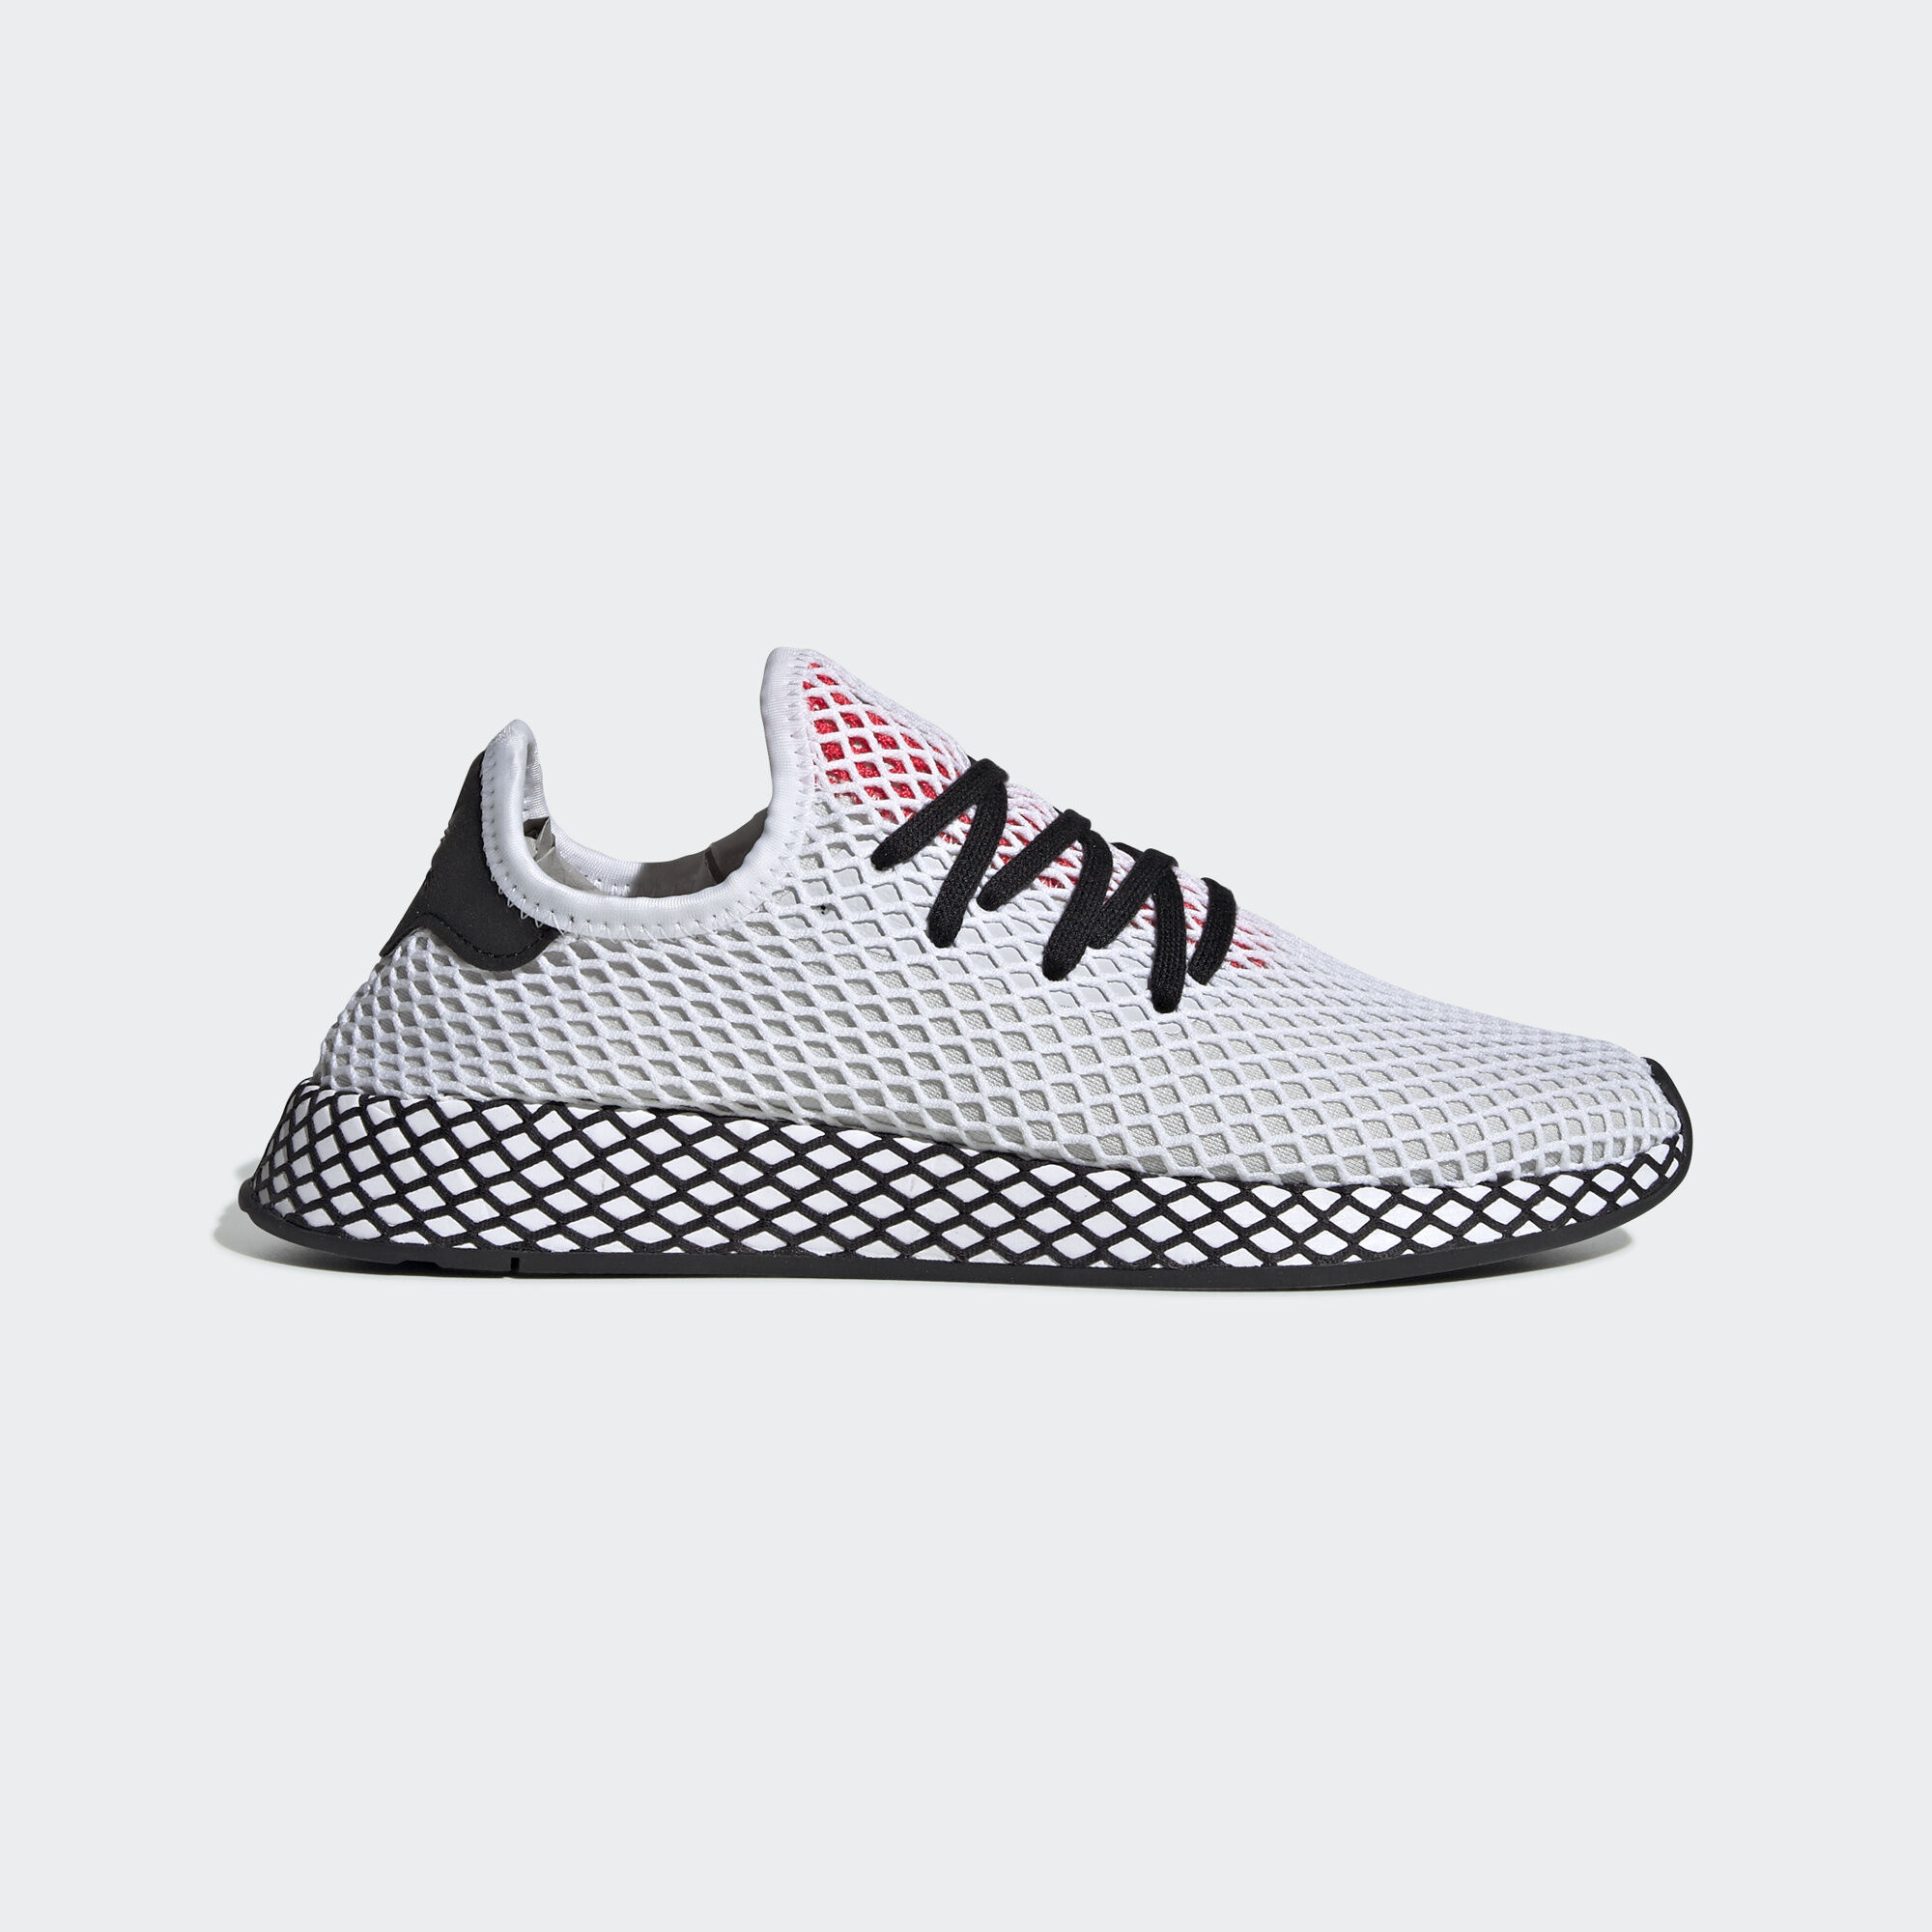 best sneakers 61cd1 9e04d adidas - Deerupt Runner Shoes Ftwr White  Core Black  Shock Red DB2686.  Originals